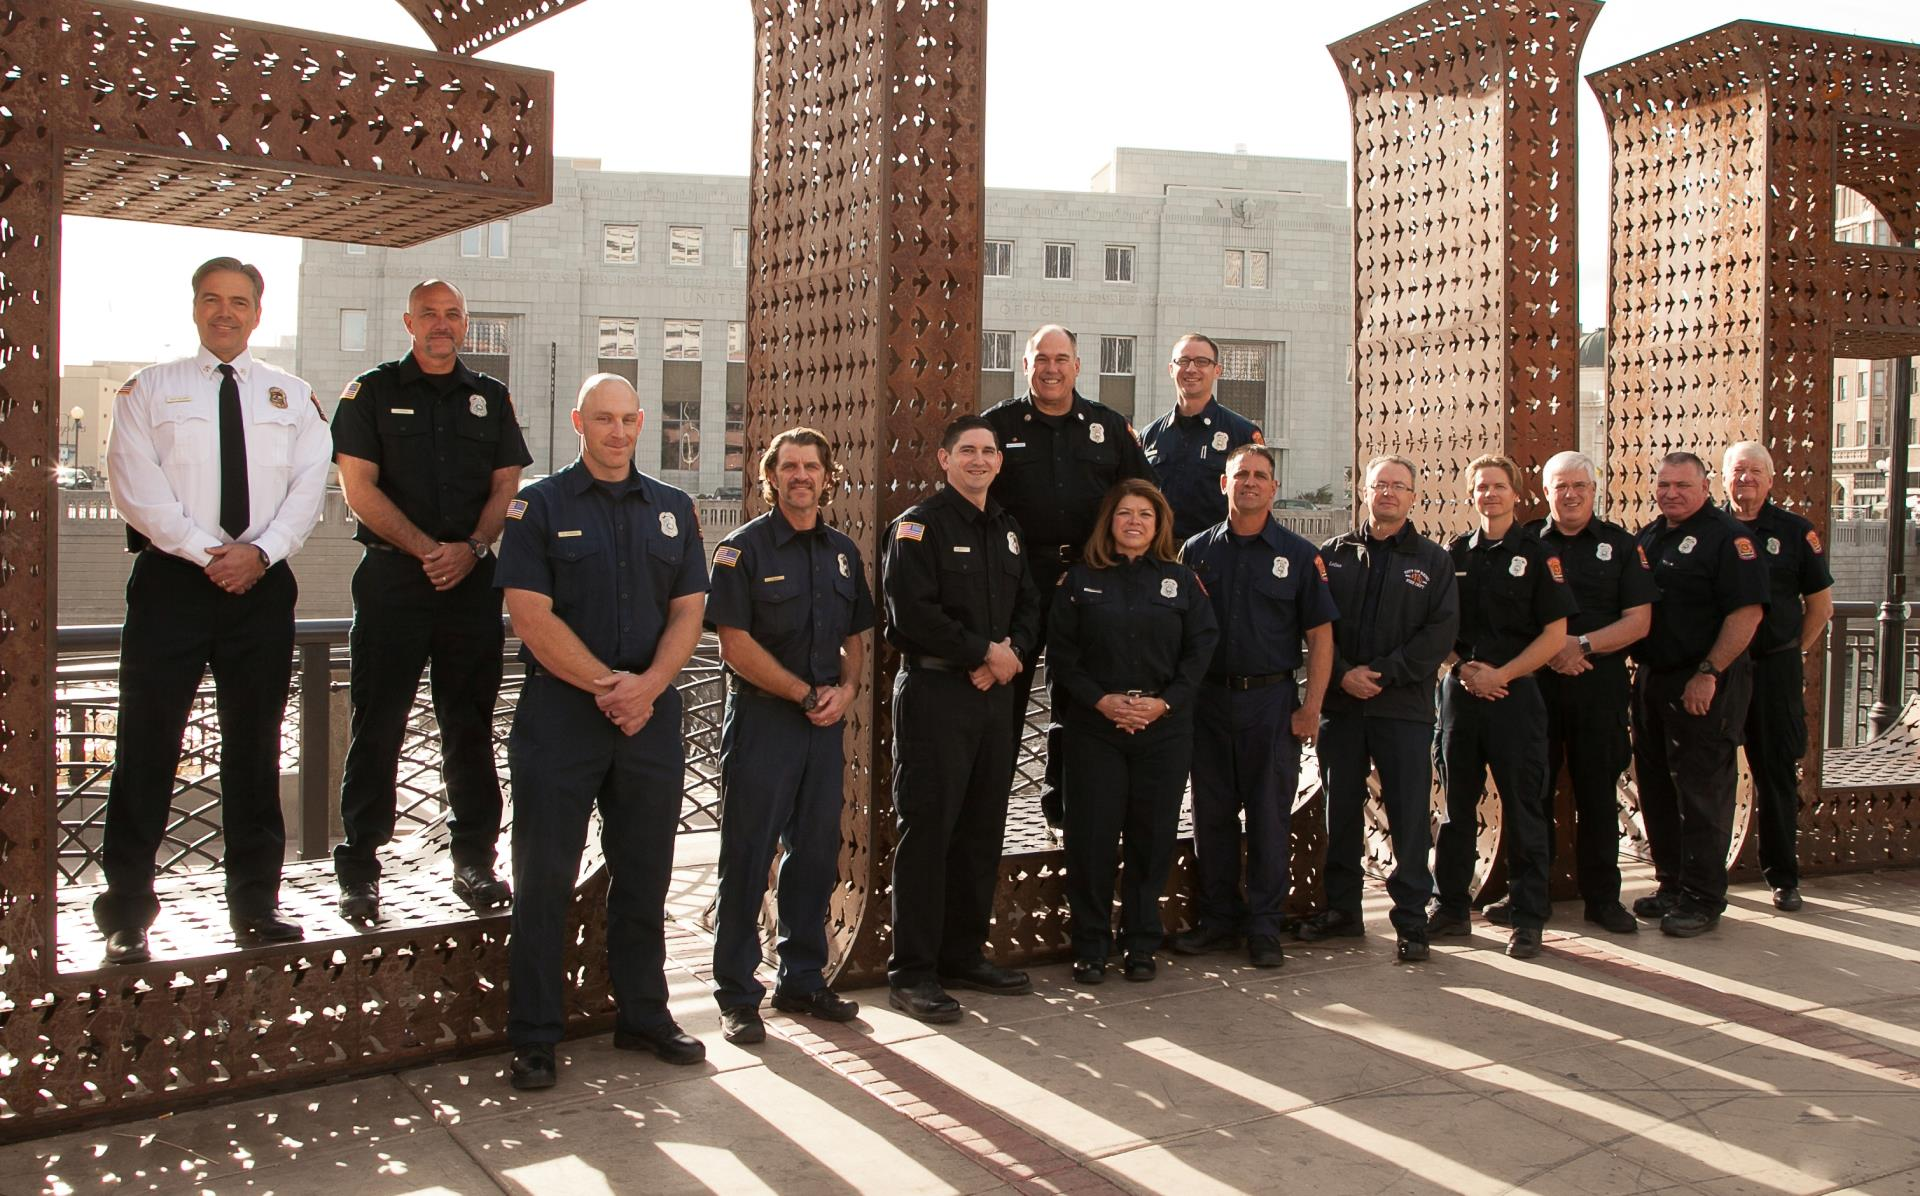 Reno Fire Prevention Bureau staff in front of Believe art sculpture on City Plaza